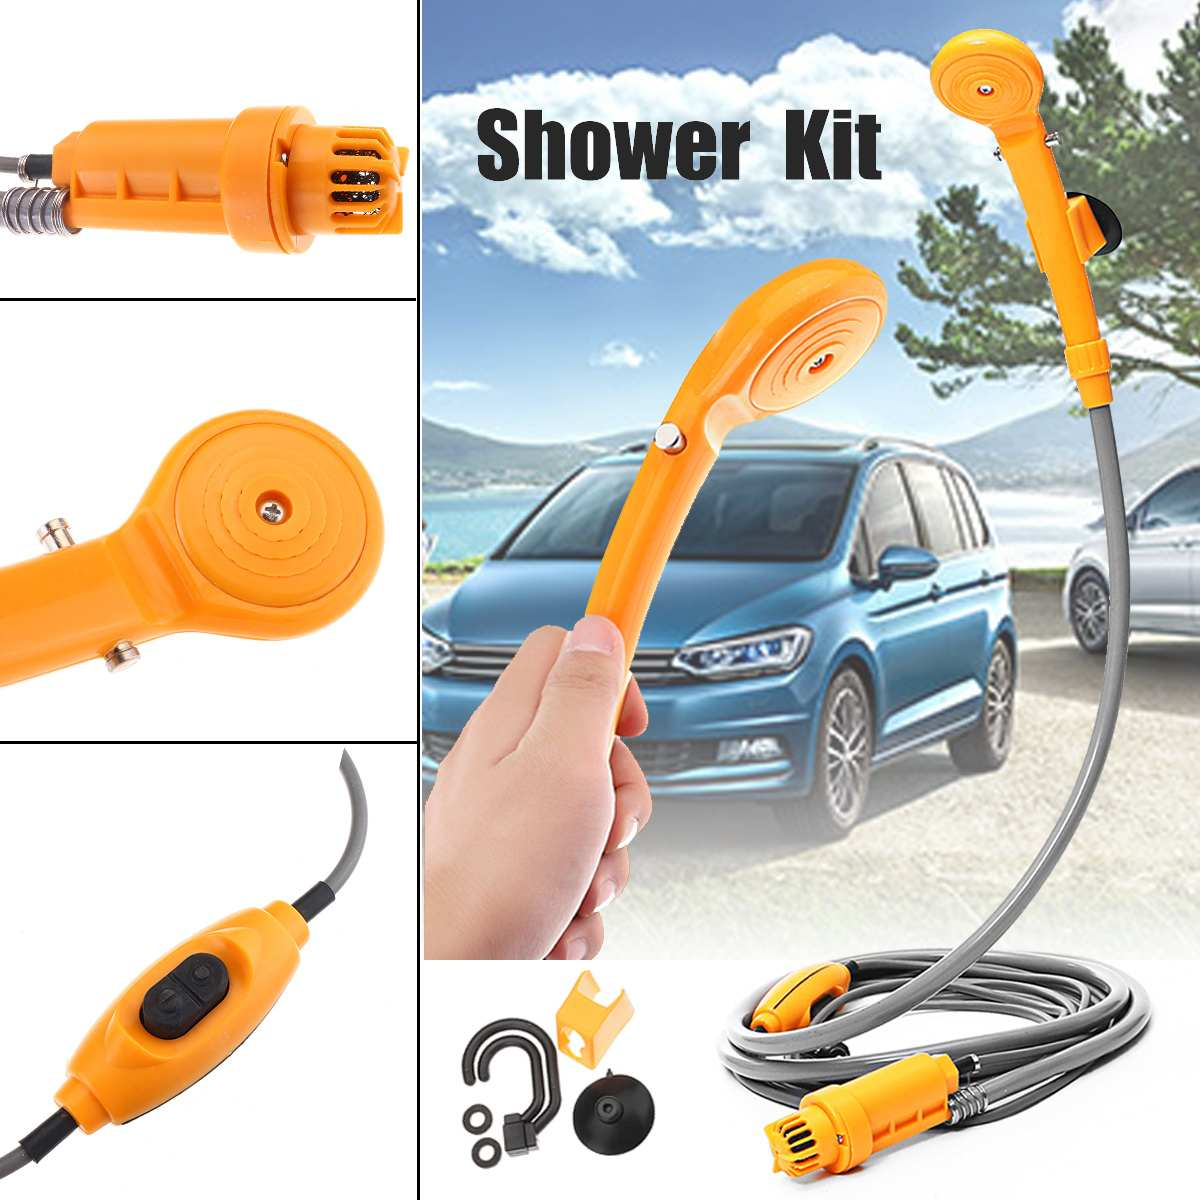 2.5 L/M Portable 12V Electric Car Plug Outdoor For Camper Caravan Van Washer Tools Bathing Camping Travel Shower Pump Pipe Kit